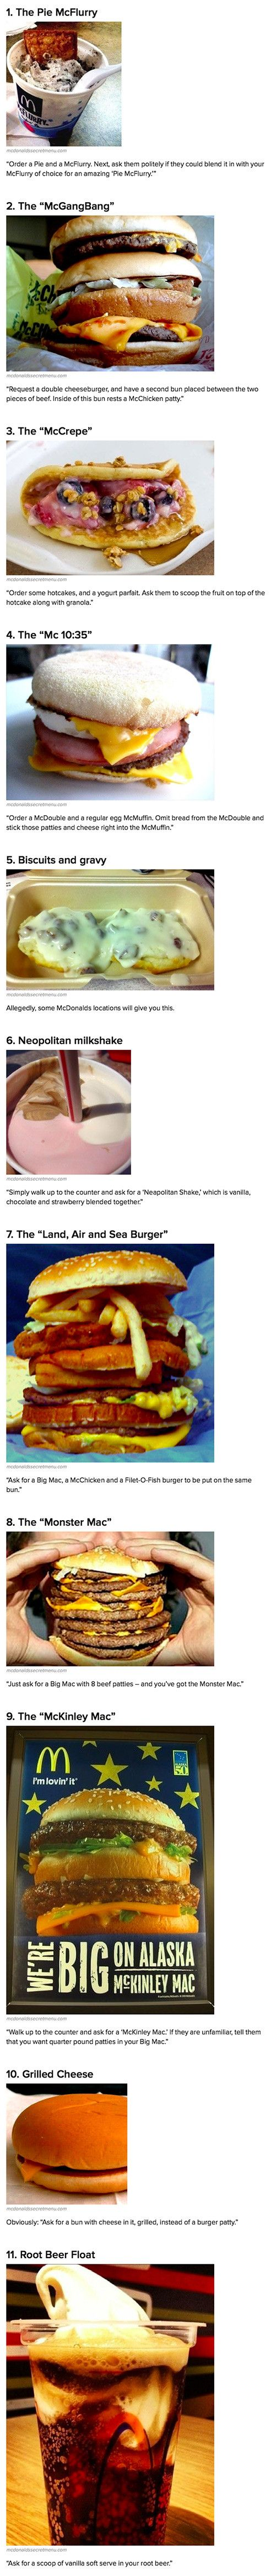 Here are some strange items you can actually order from the McDonalds secret menu.  This goes to the WOW board for the 8-patty Big Mac and the land sea thing--vomit-inducing sandwiches if ever there were ones. Ugh.